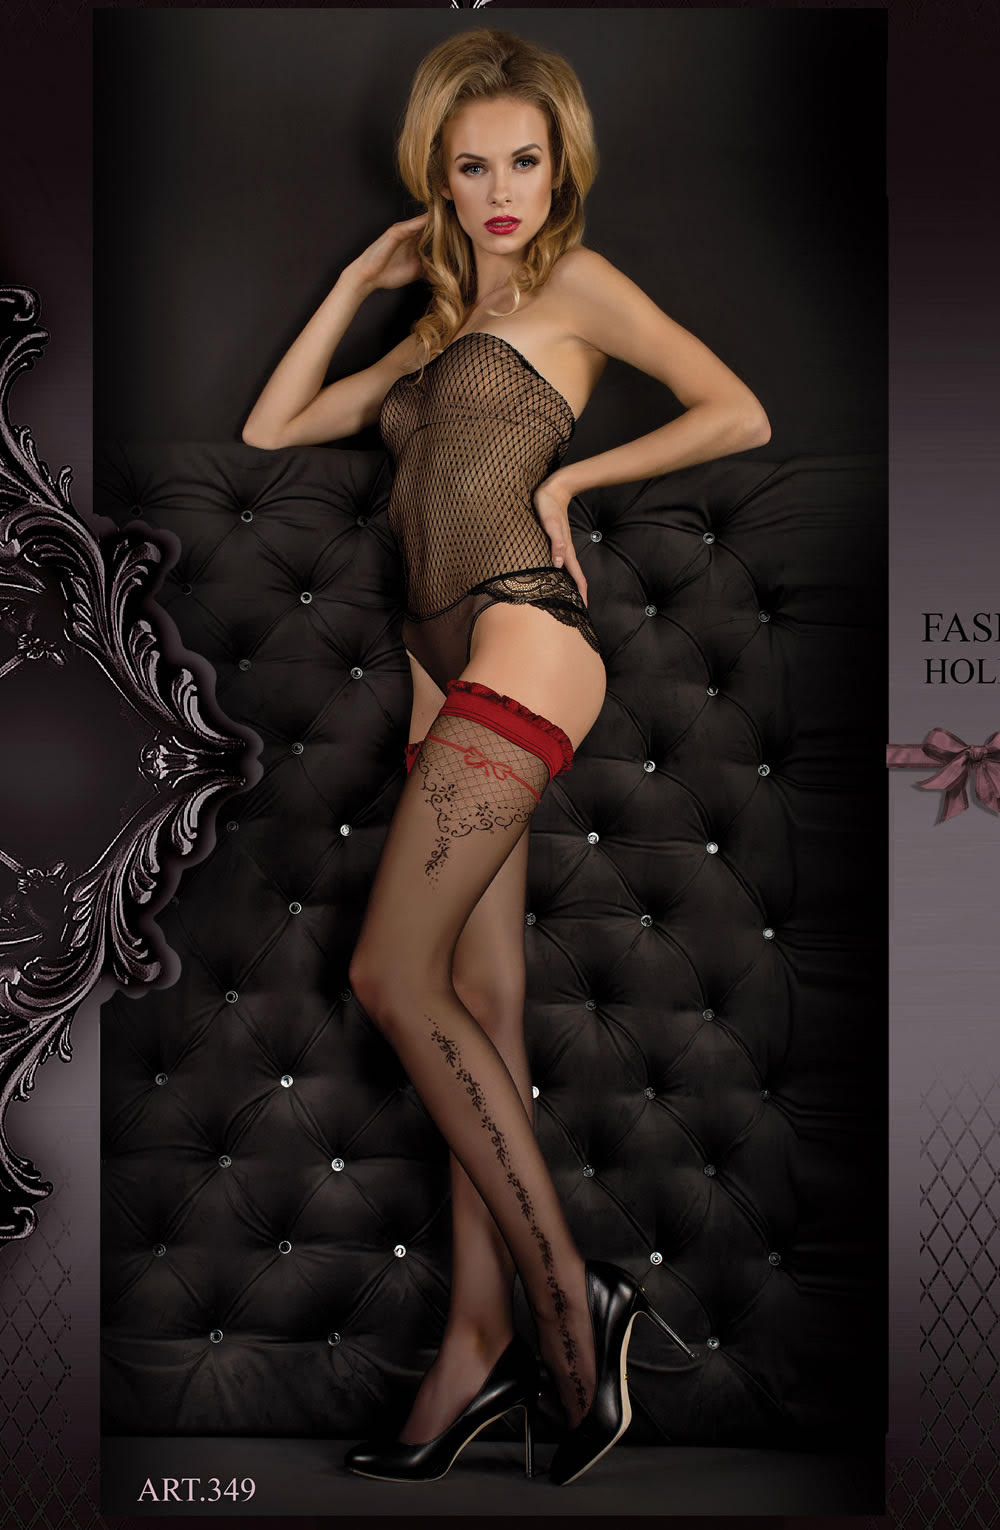 Ballerina 345 Hold Ups - Black & Red